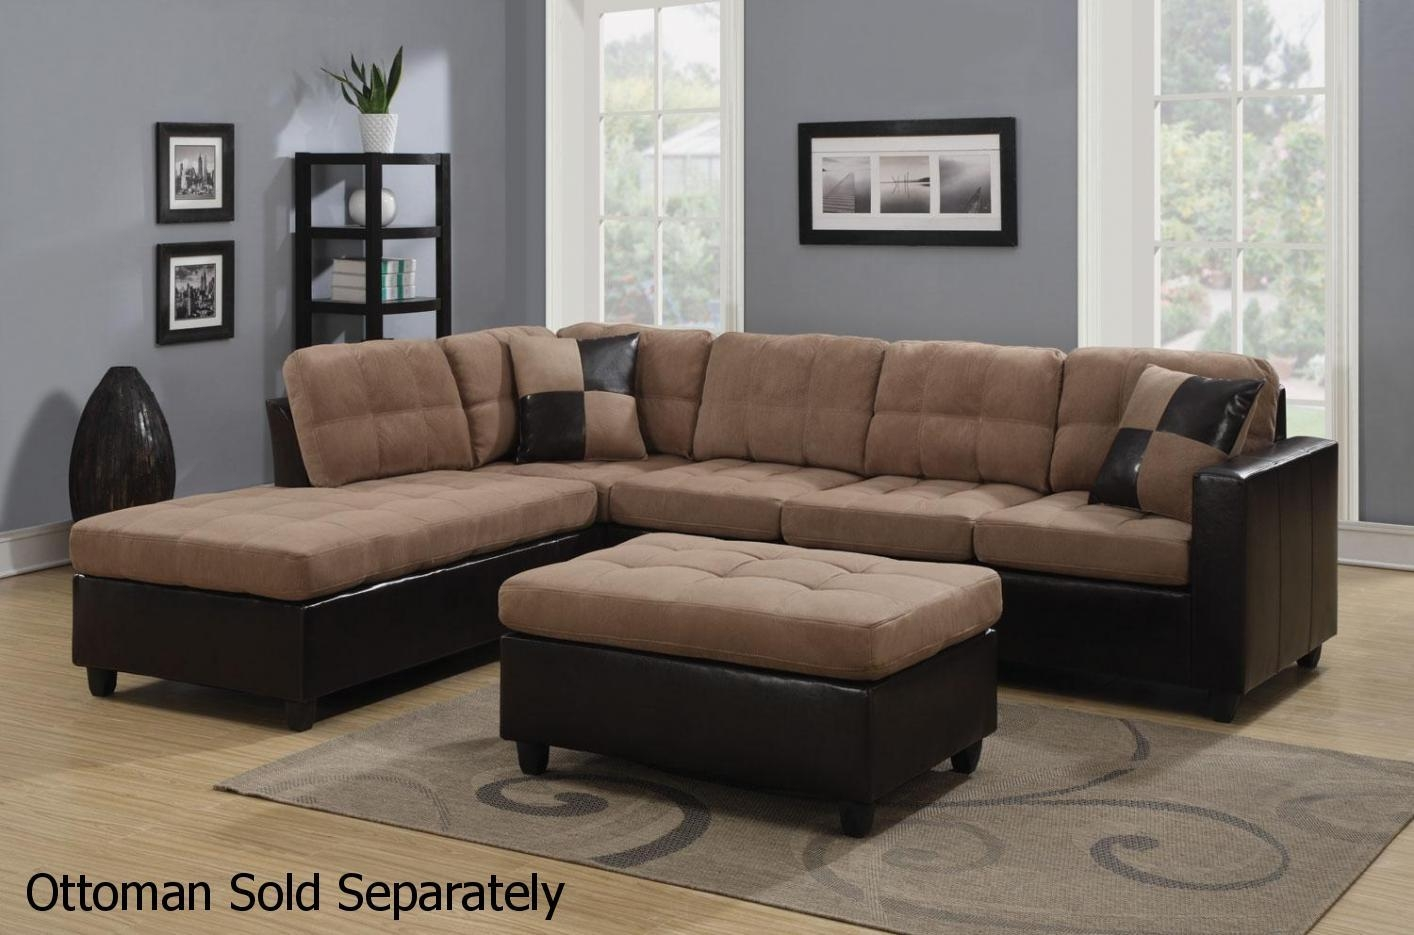 20 ideas of chenille sectional sofas sofa ideas for Beige chenille sectional sofa